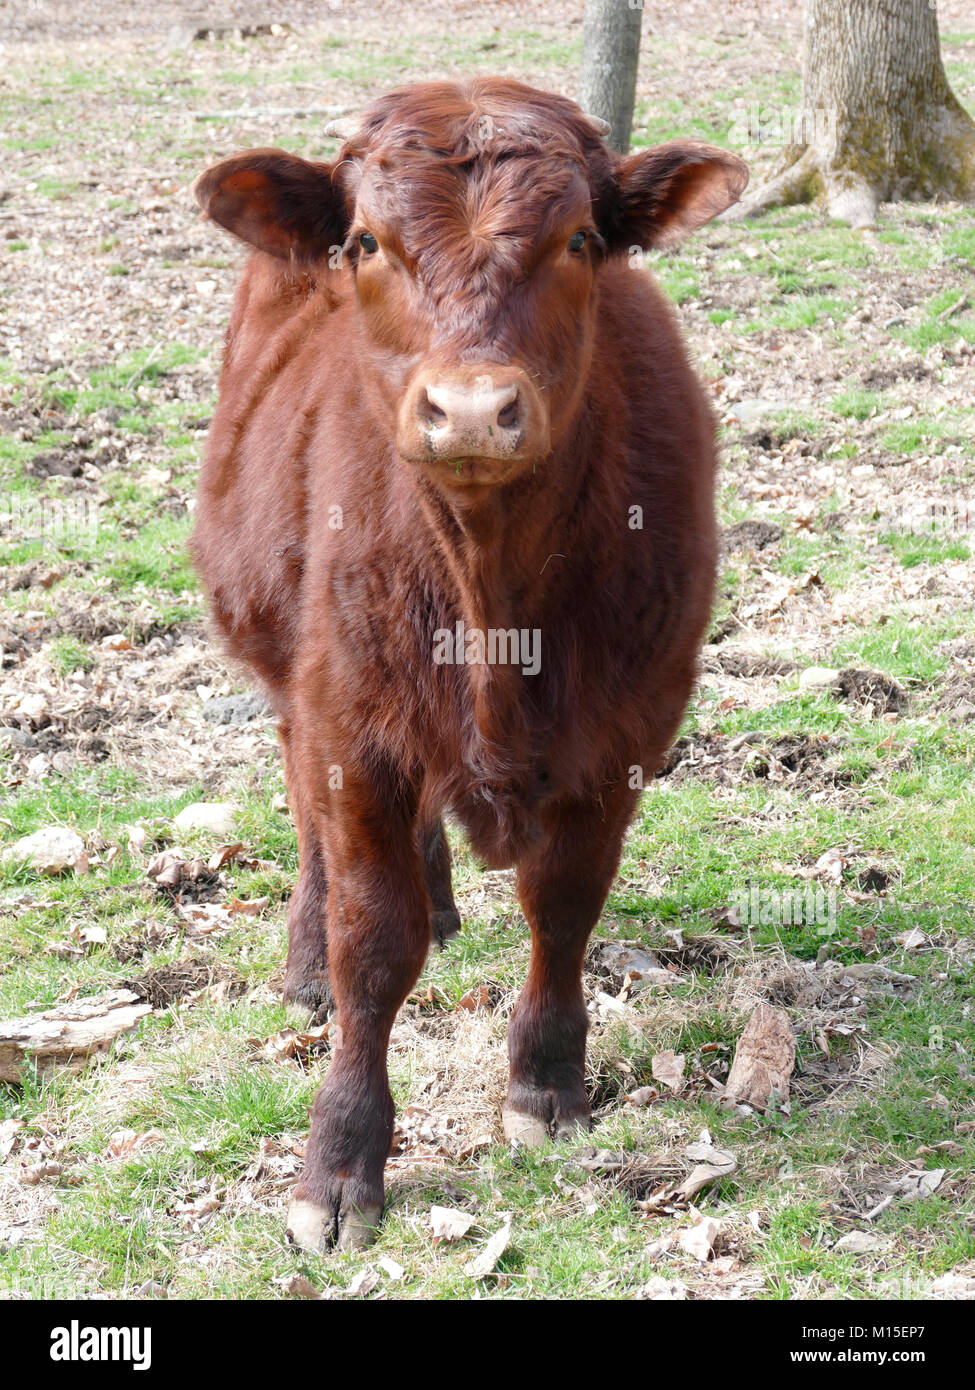 Brown Devon Cattle Posing for Camera on a Farm - Stock Image